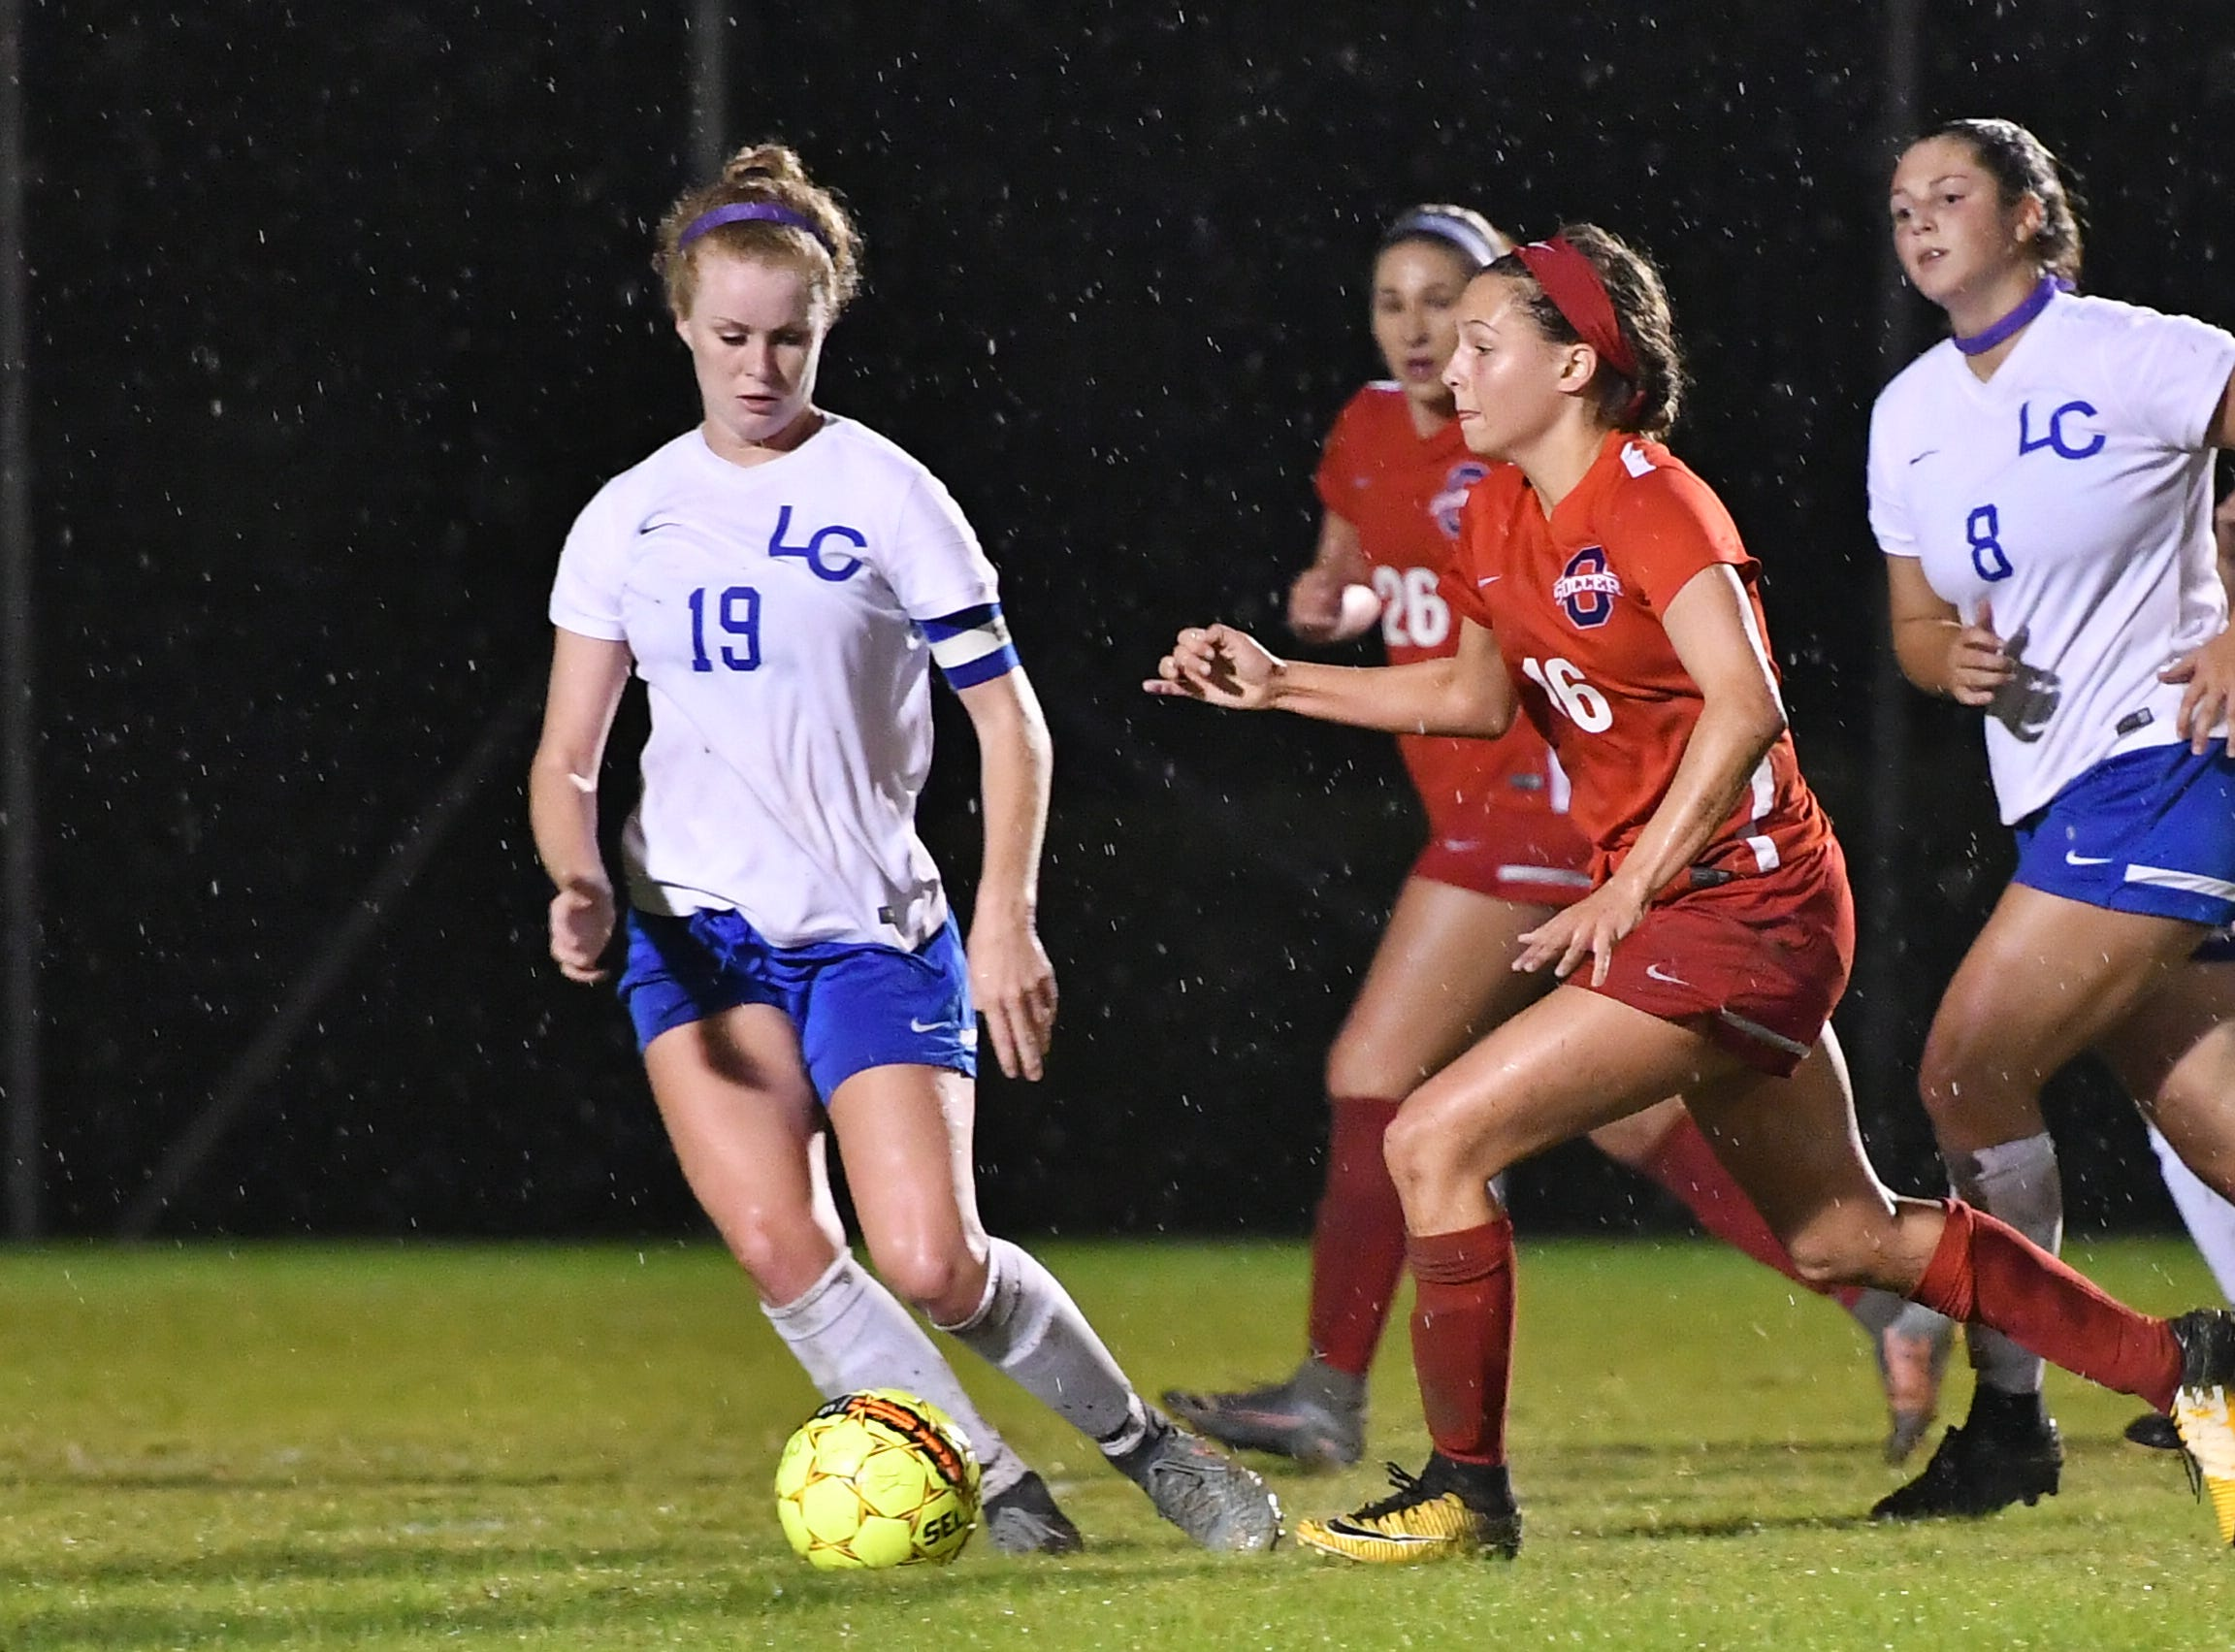 Lincoln County's Julia Marsh possesses the ball under pressure from Oakland's Faith Adams (16)